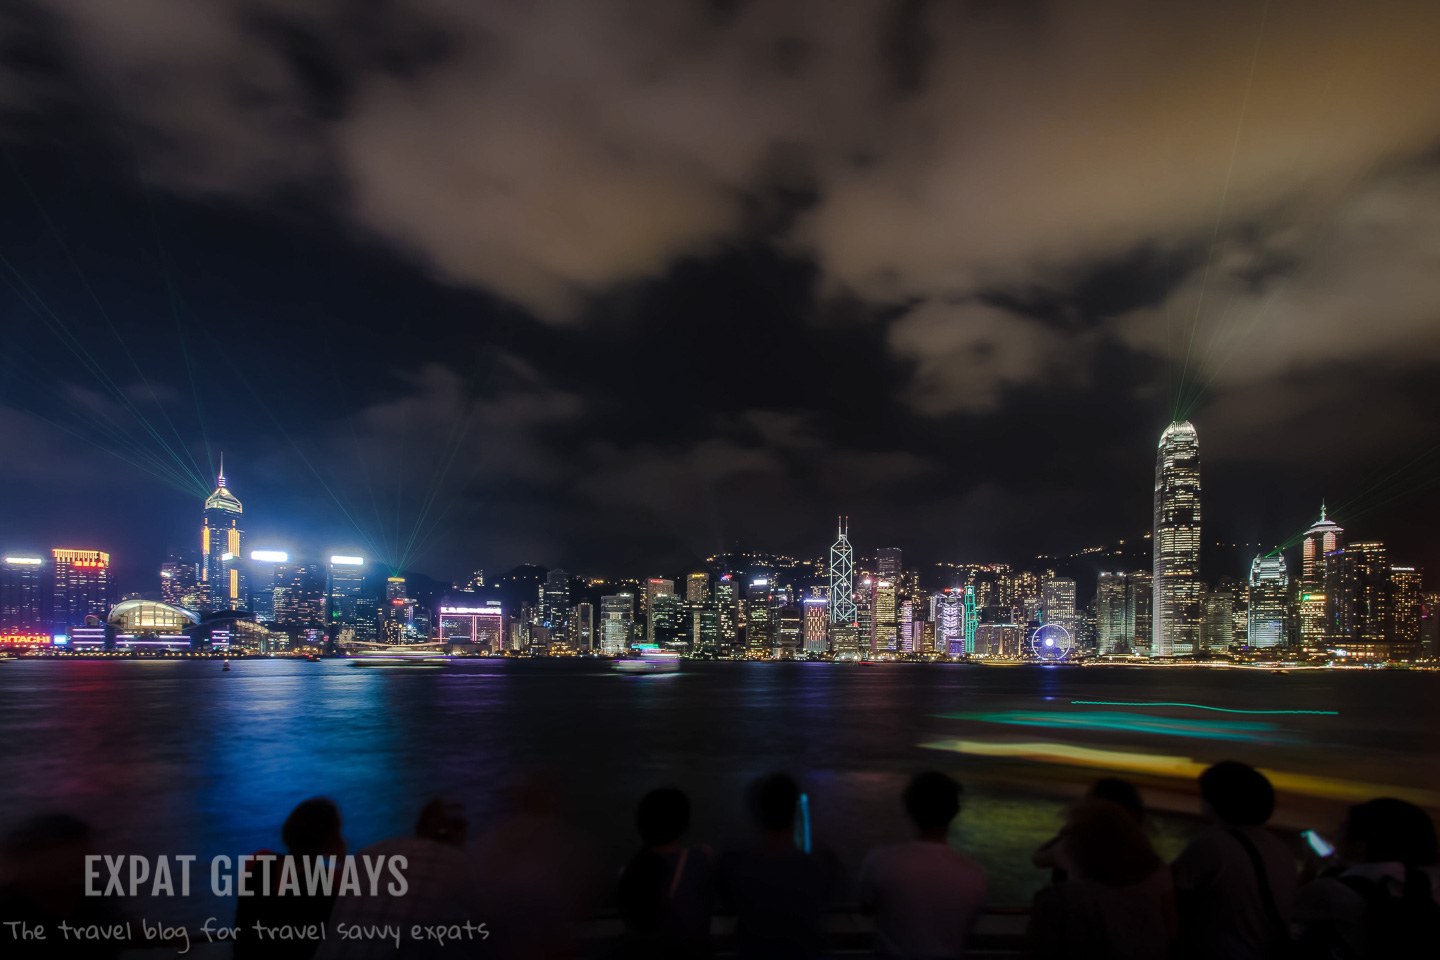 You can't miss seeing Hong Kong's iconic skyline by night. See it on a 48 hour layover on your next trip.